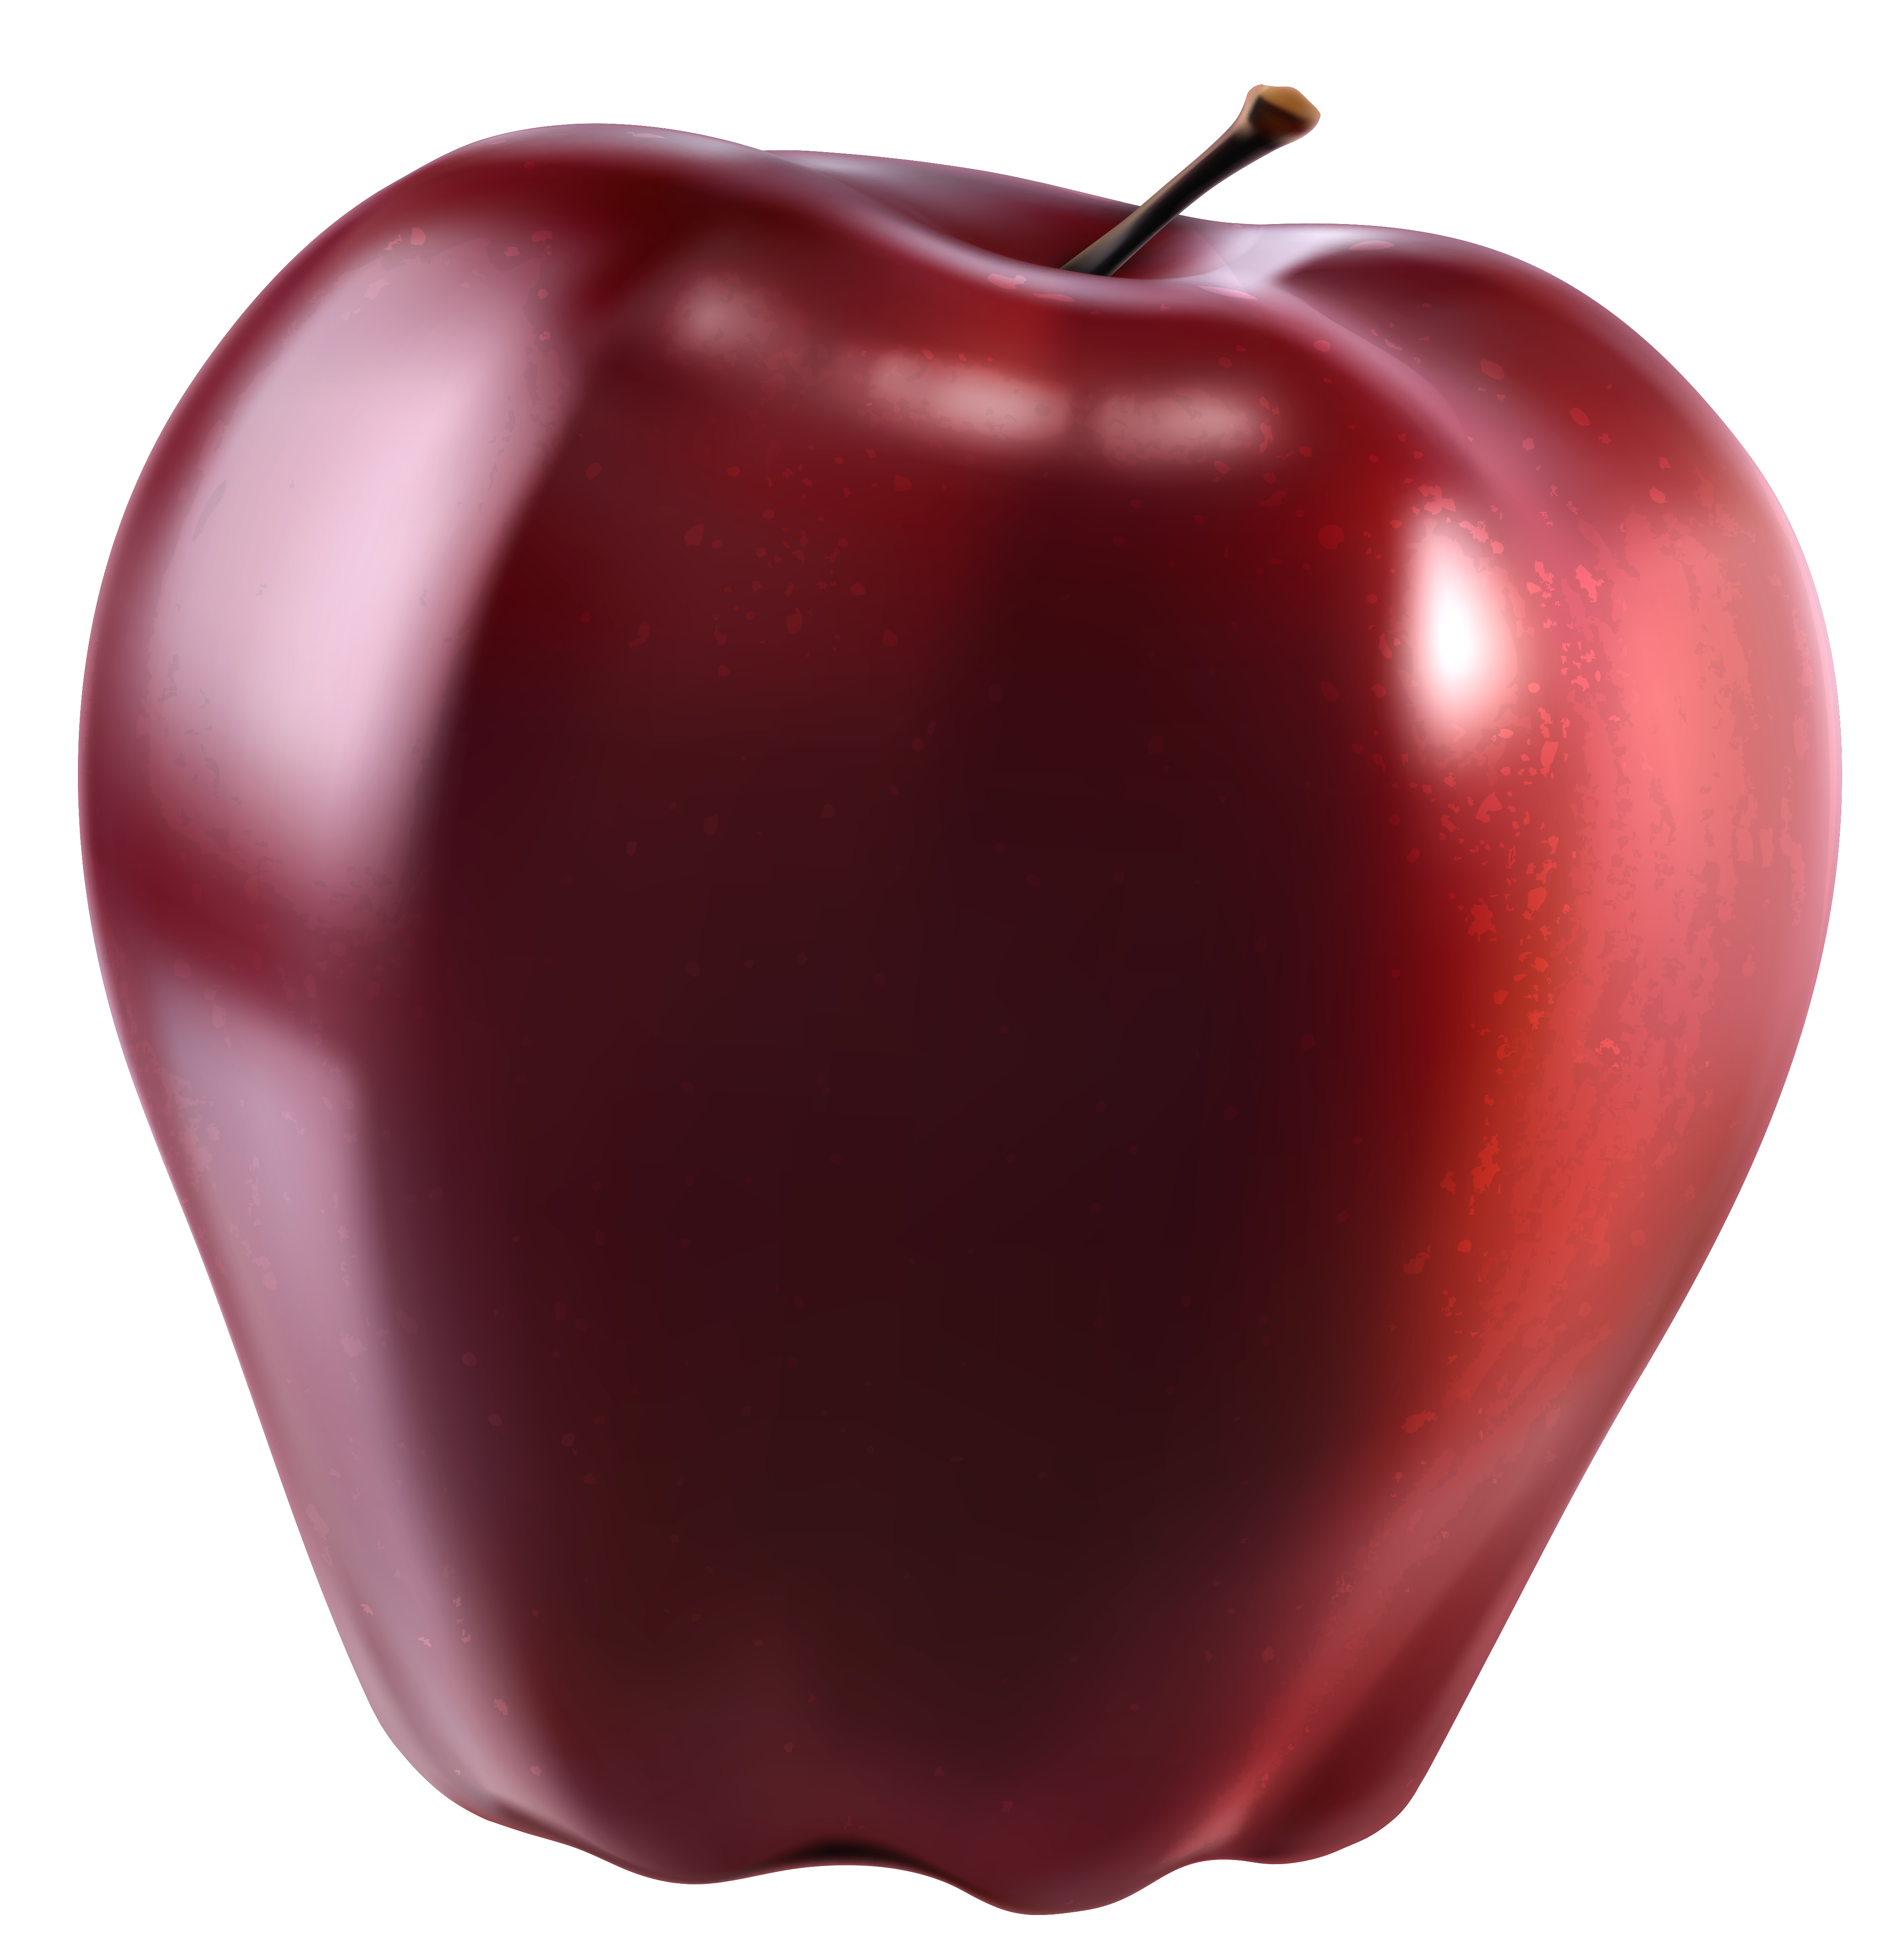 Red apple png. Clipart picture gallery yopriceville